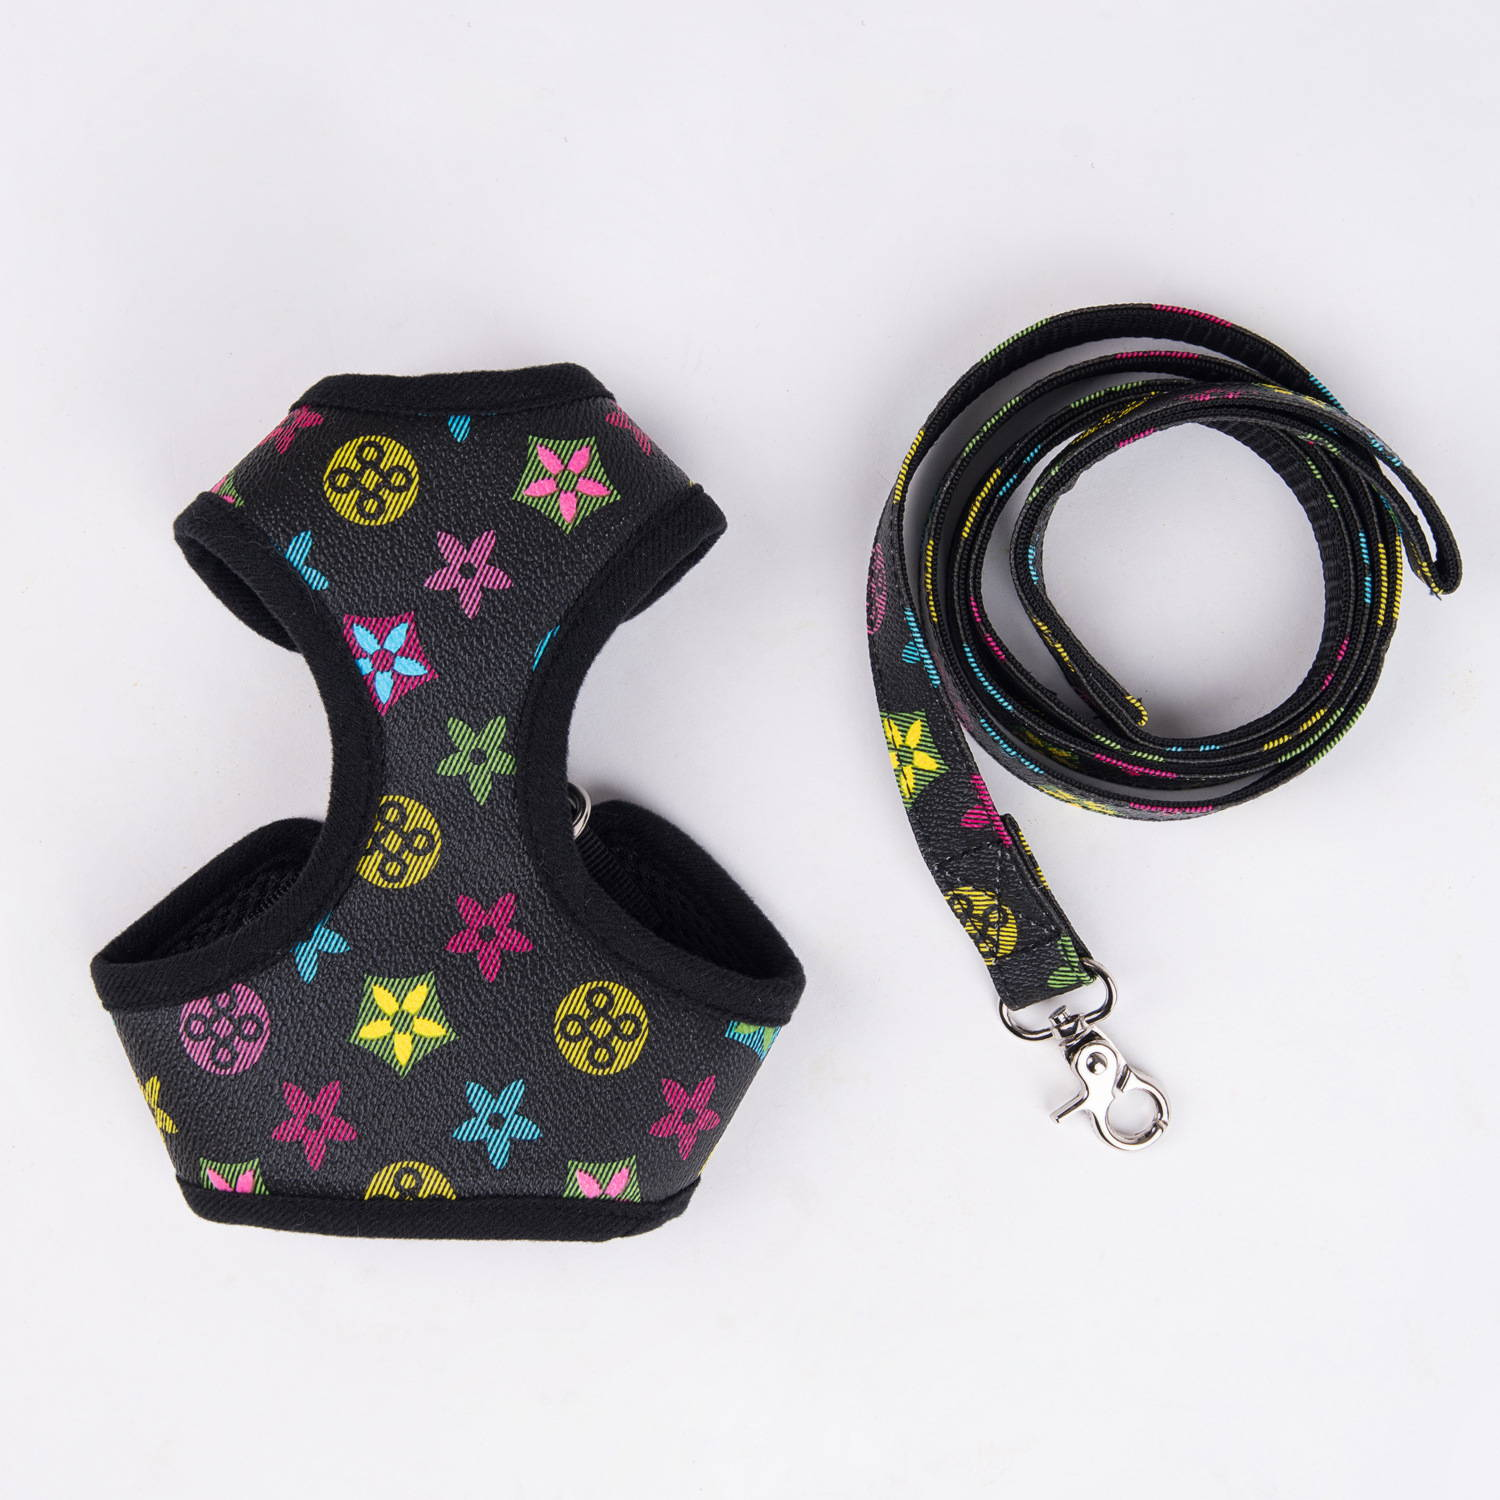 louis vuitton dog harness and leash